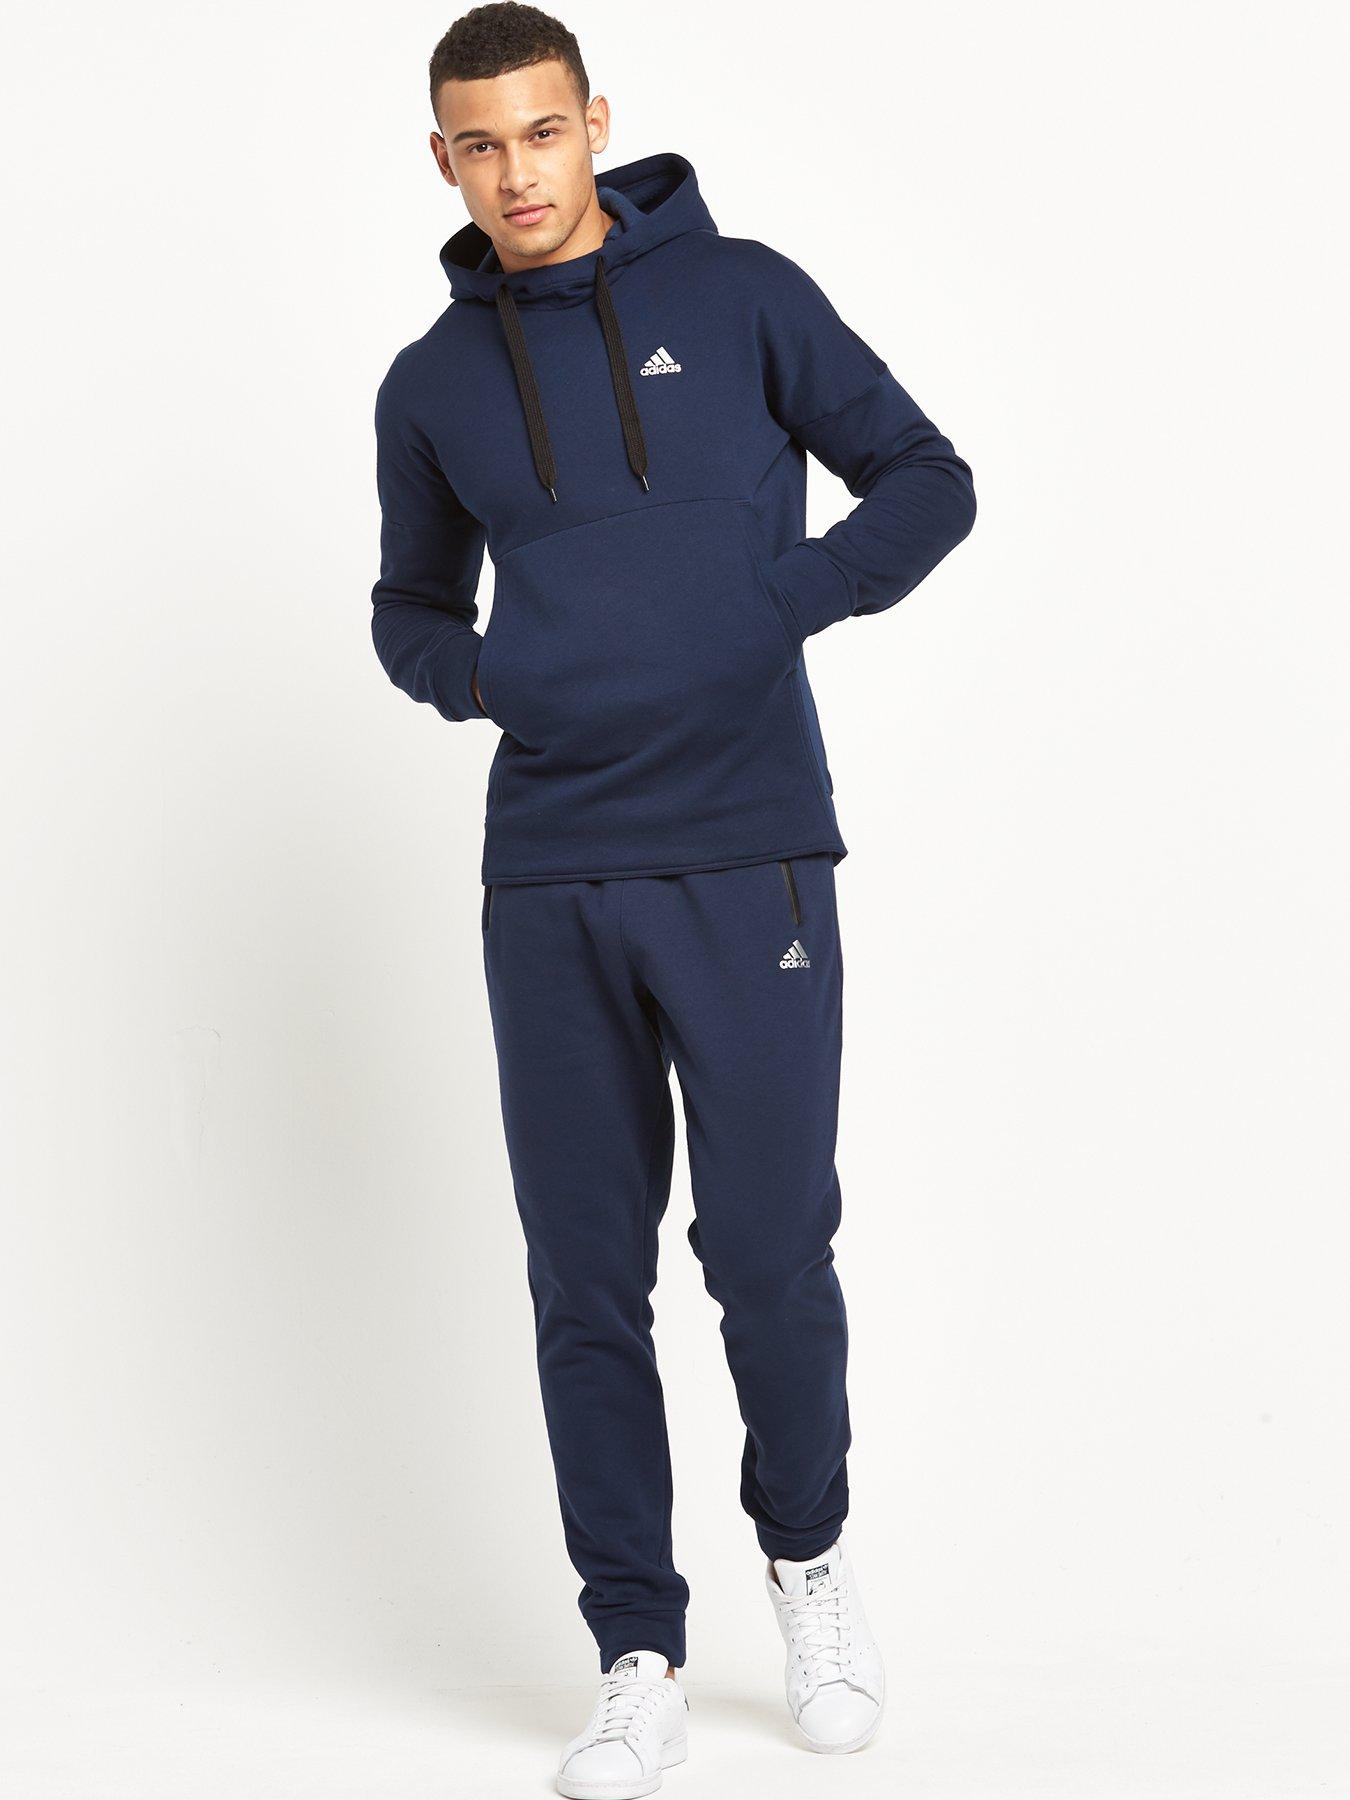 adidas | adidas Store Online | Very.co.uk